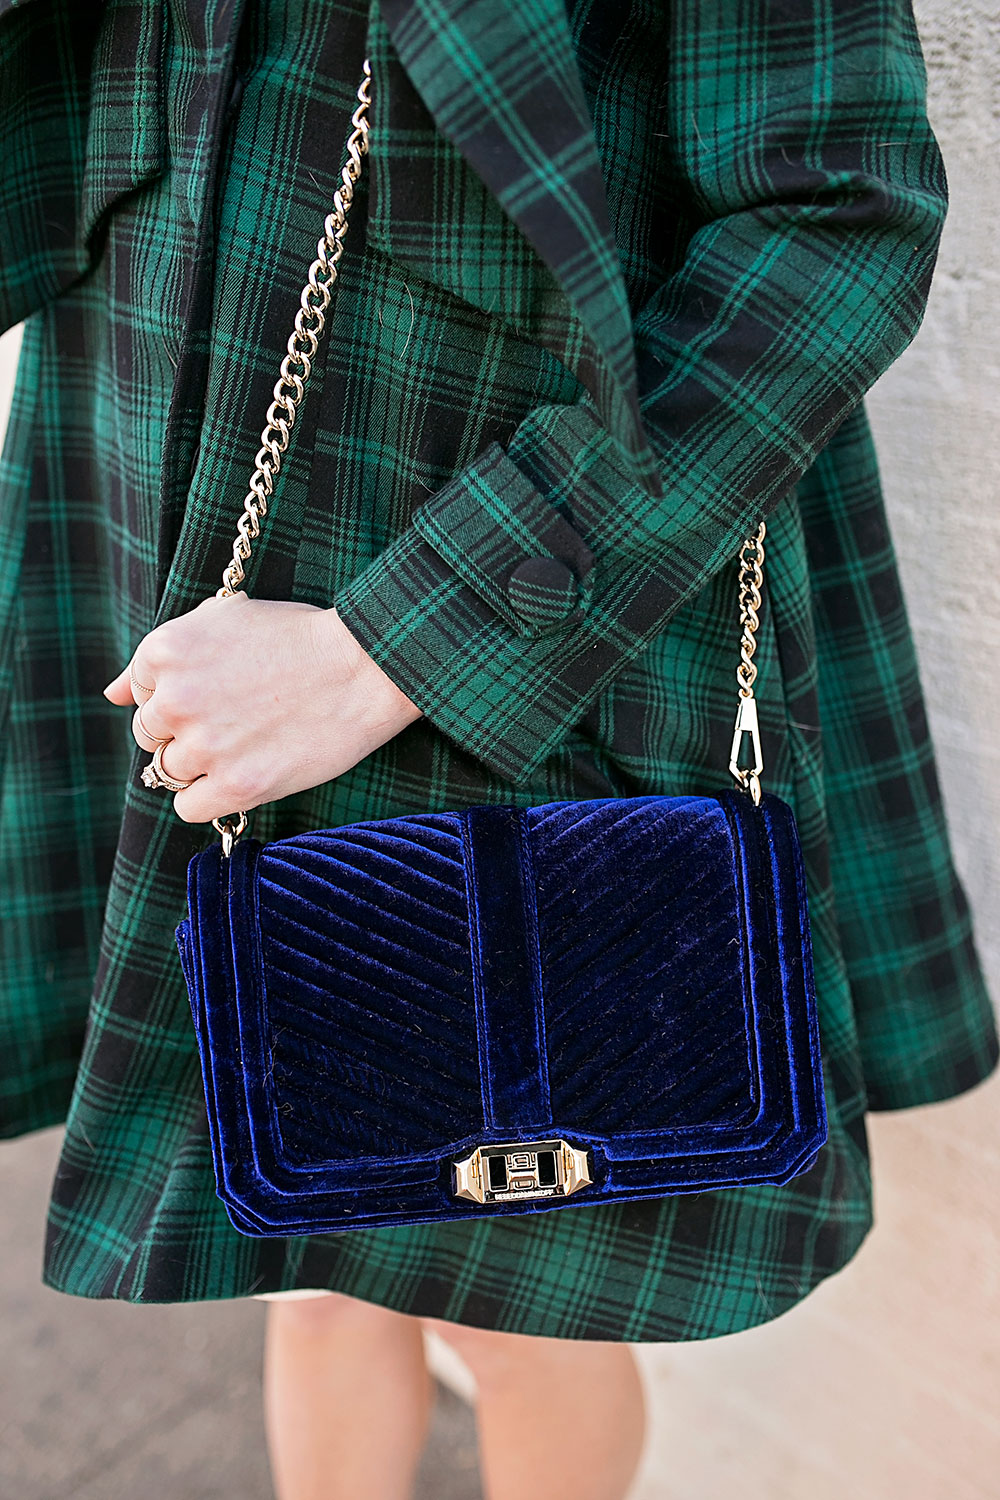 rebecca-minkoff-love-velvet-crossbody-bag-in-moon-blue